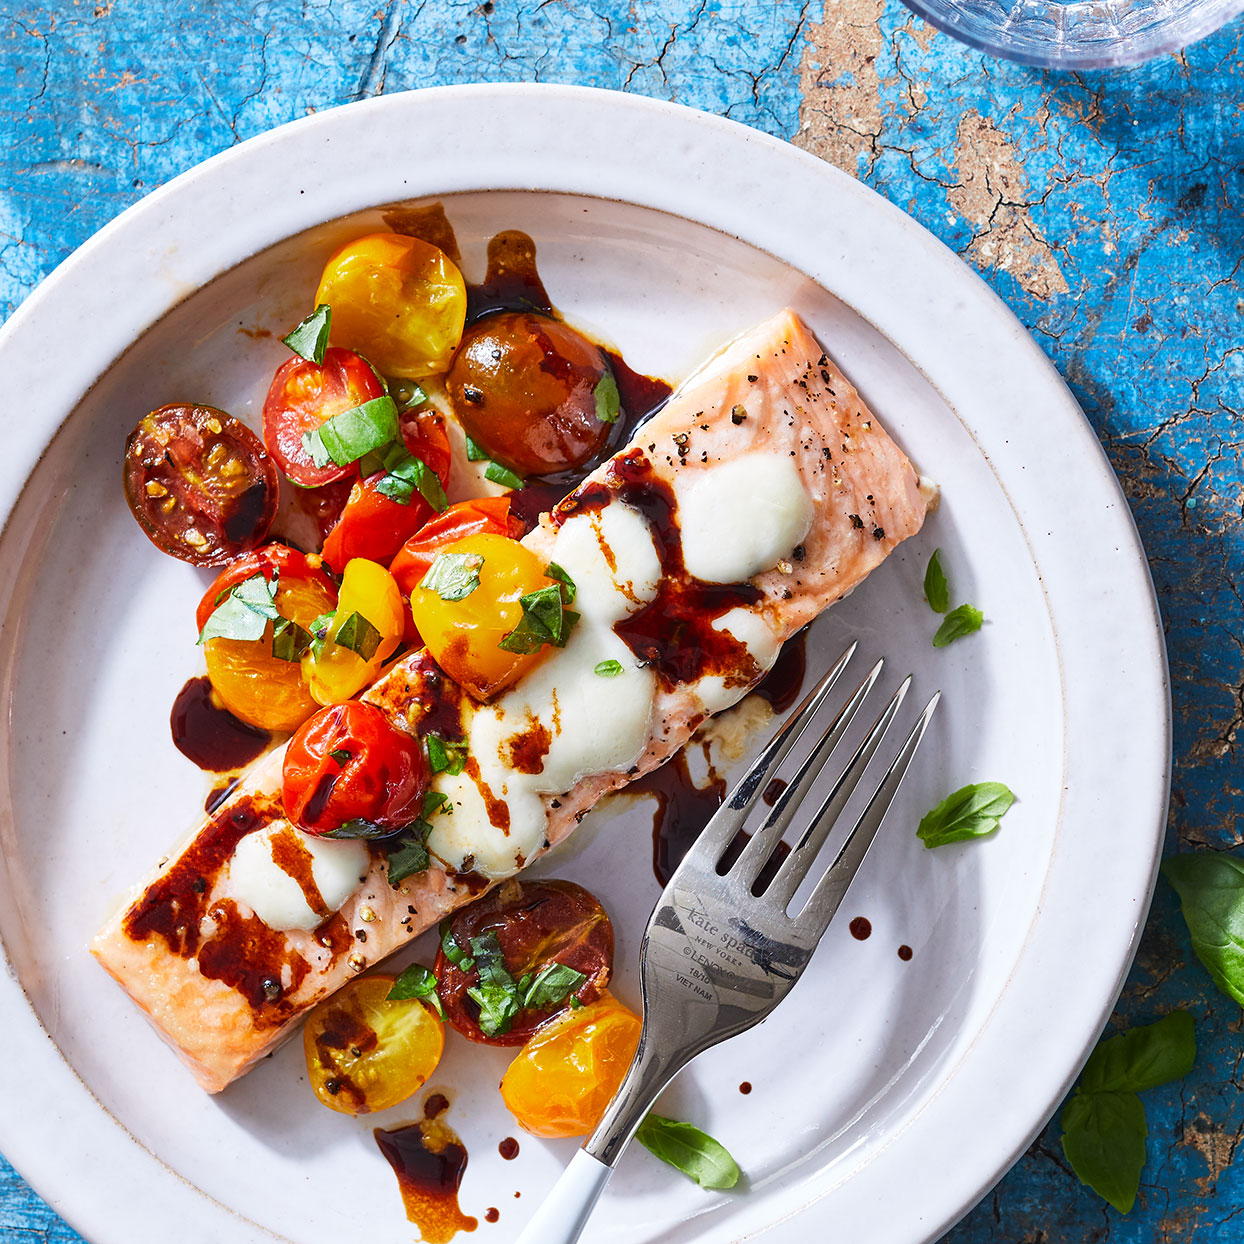 This oven-ready recipe is snap to prep. Salmon fillets and cherry tomatoes roast side by side on one pan, then are drizzled with balsamic glaze to pull it all together. Source: EatingWell.com, February 2020